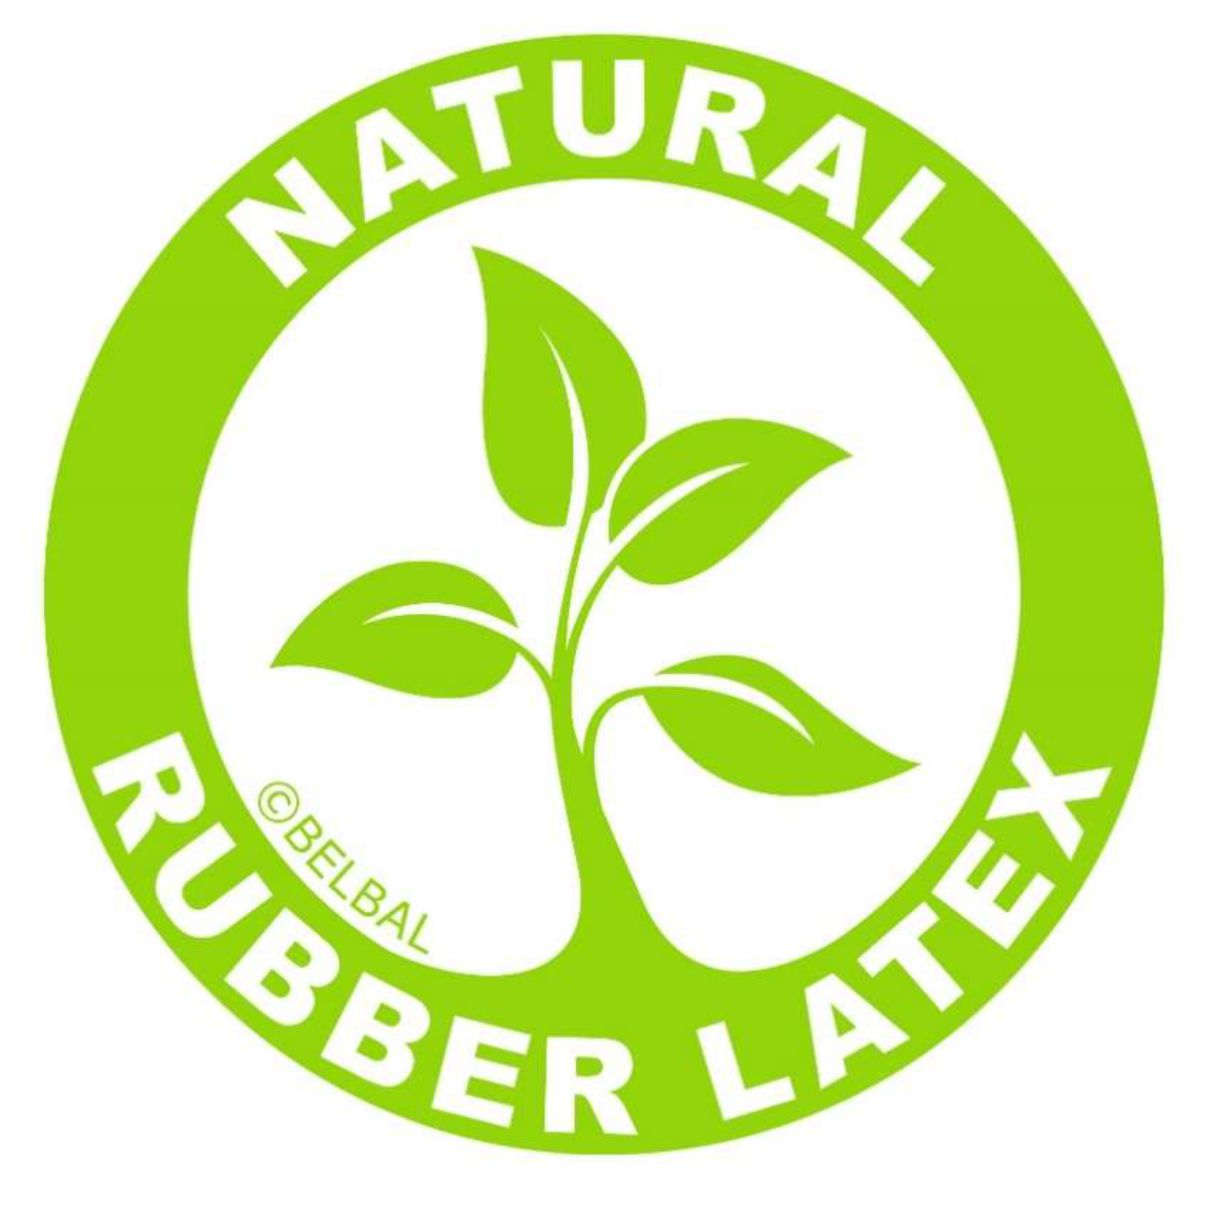 latex-natural-belbal